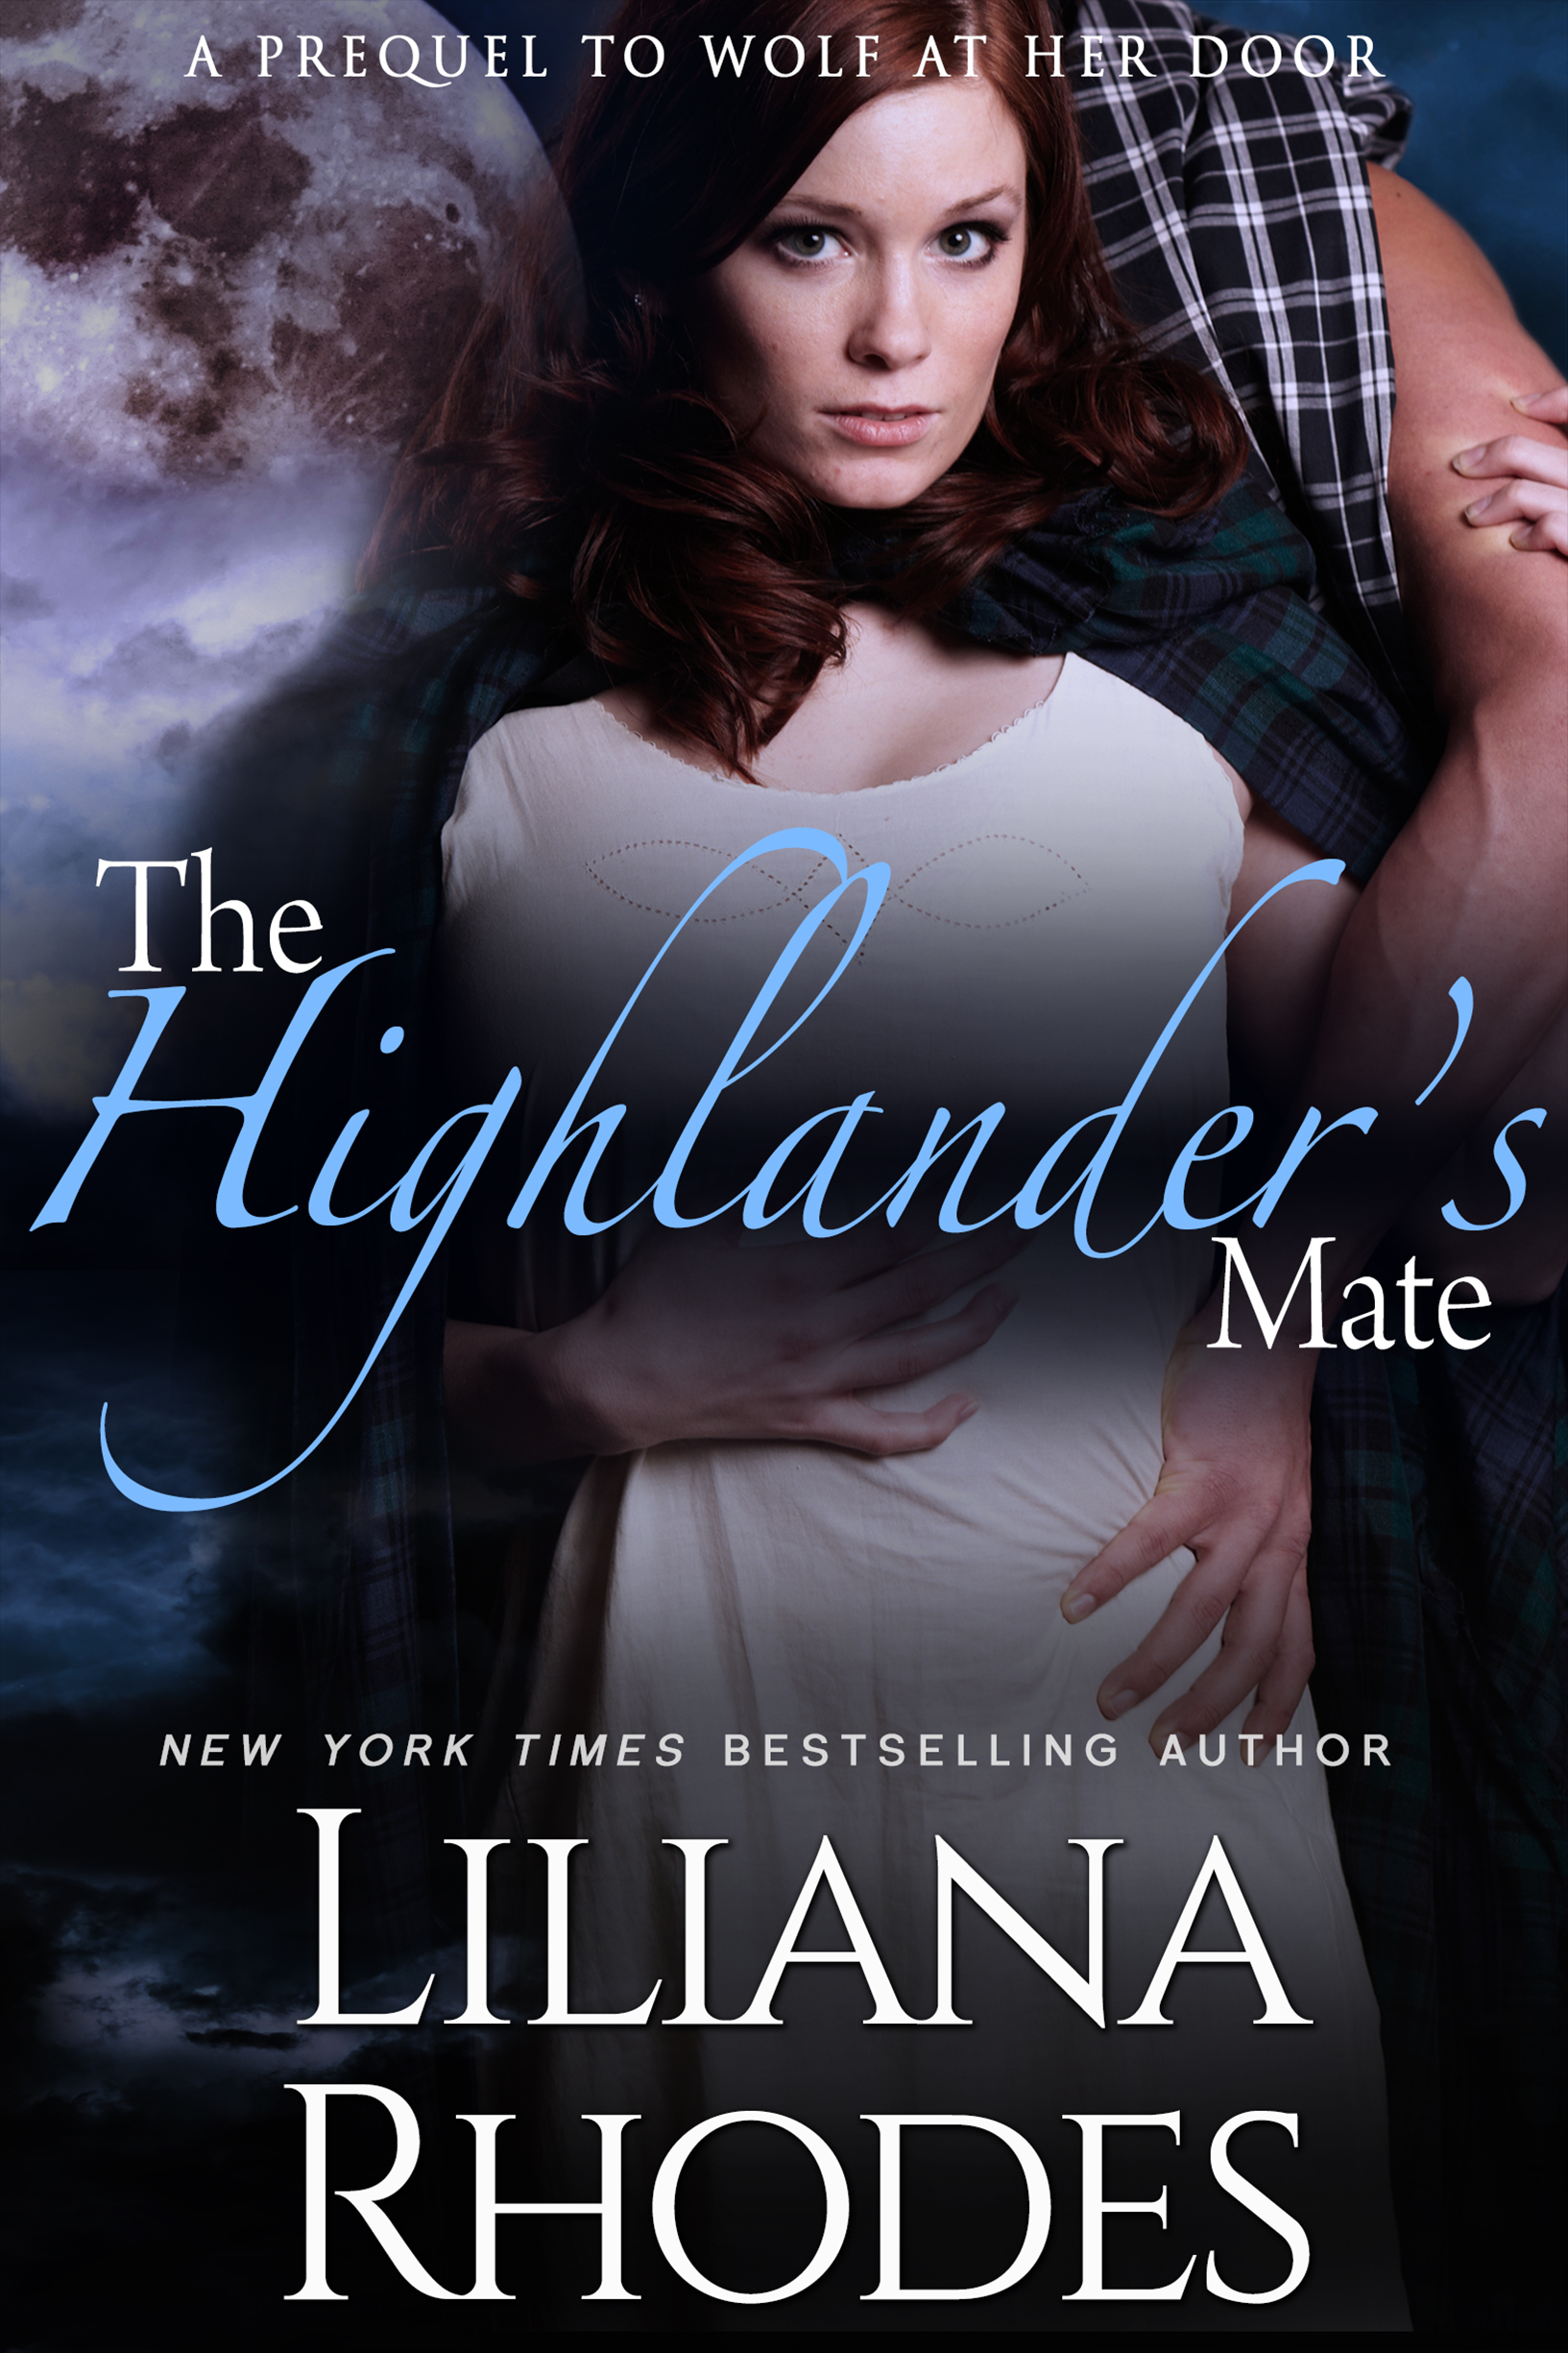 The Highlander's Mate by Liliana Rhodes